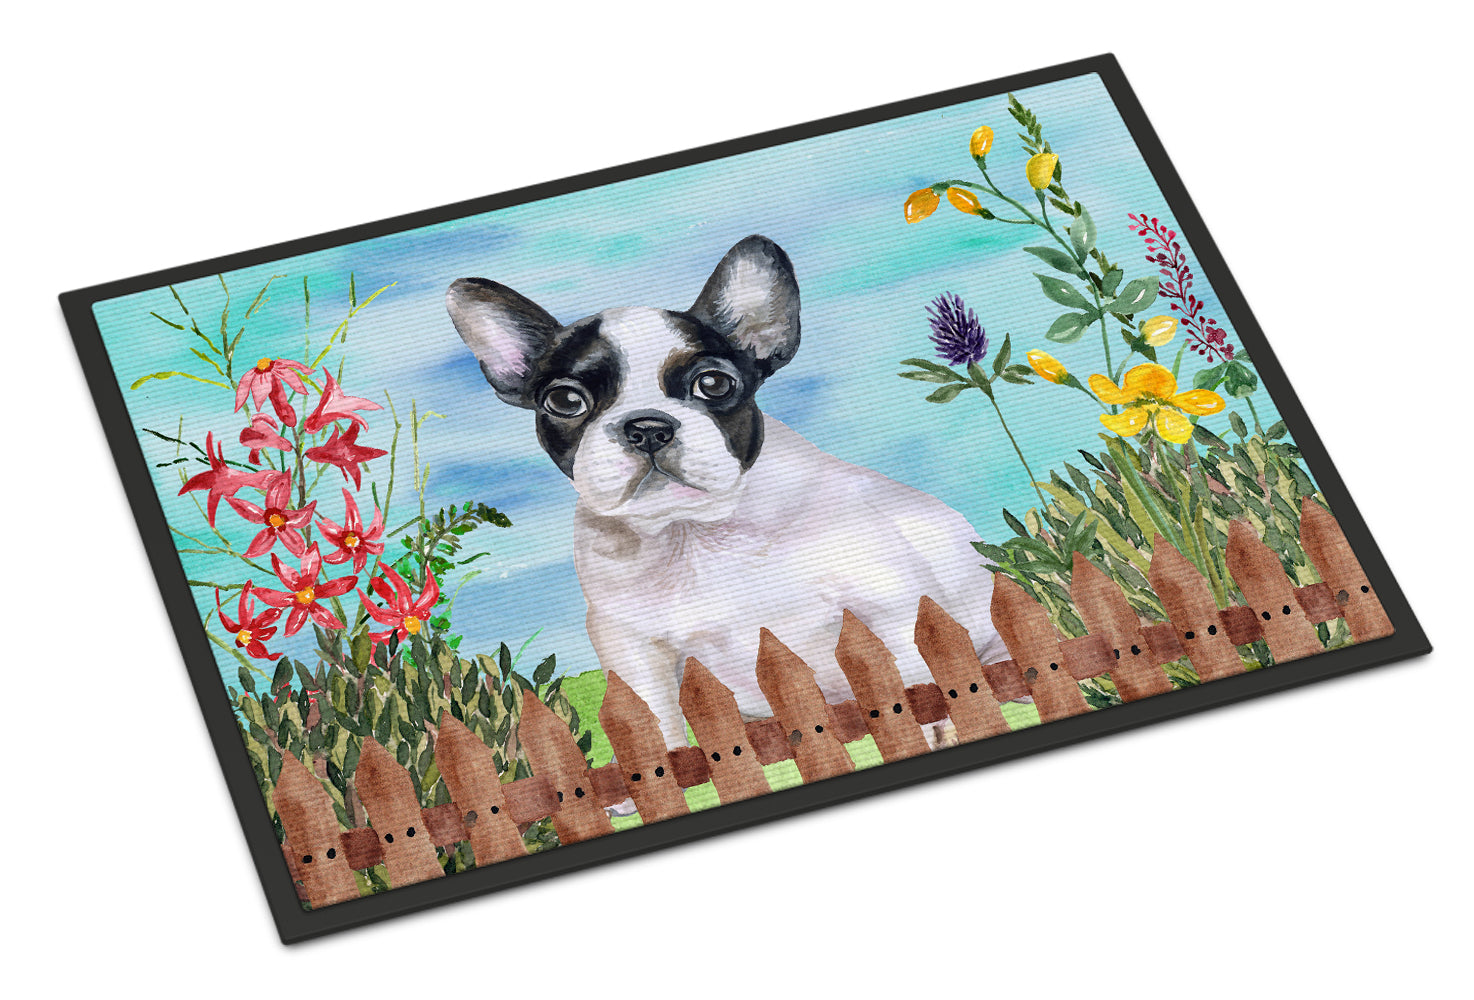 French Bulldog Black White Spring Indoor or Outdoor Mat 18x27 CK1272MAT by Caroline's Treasures